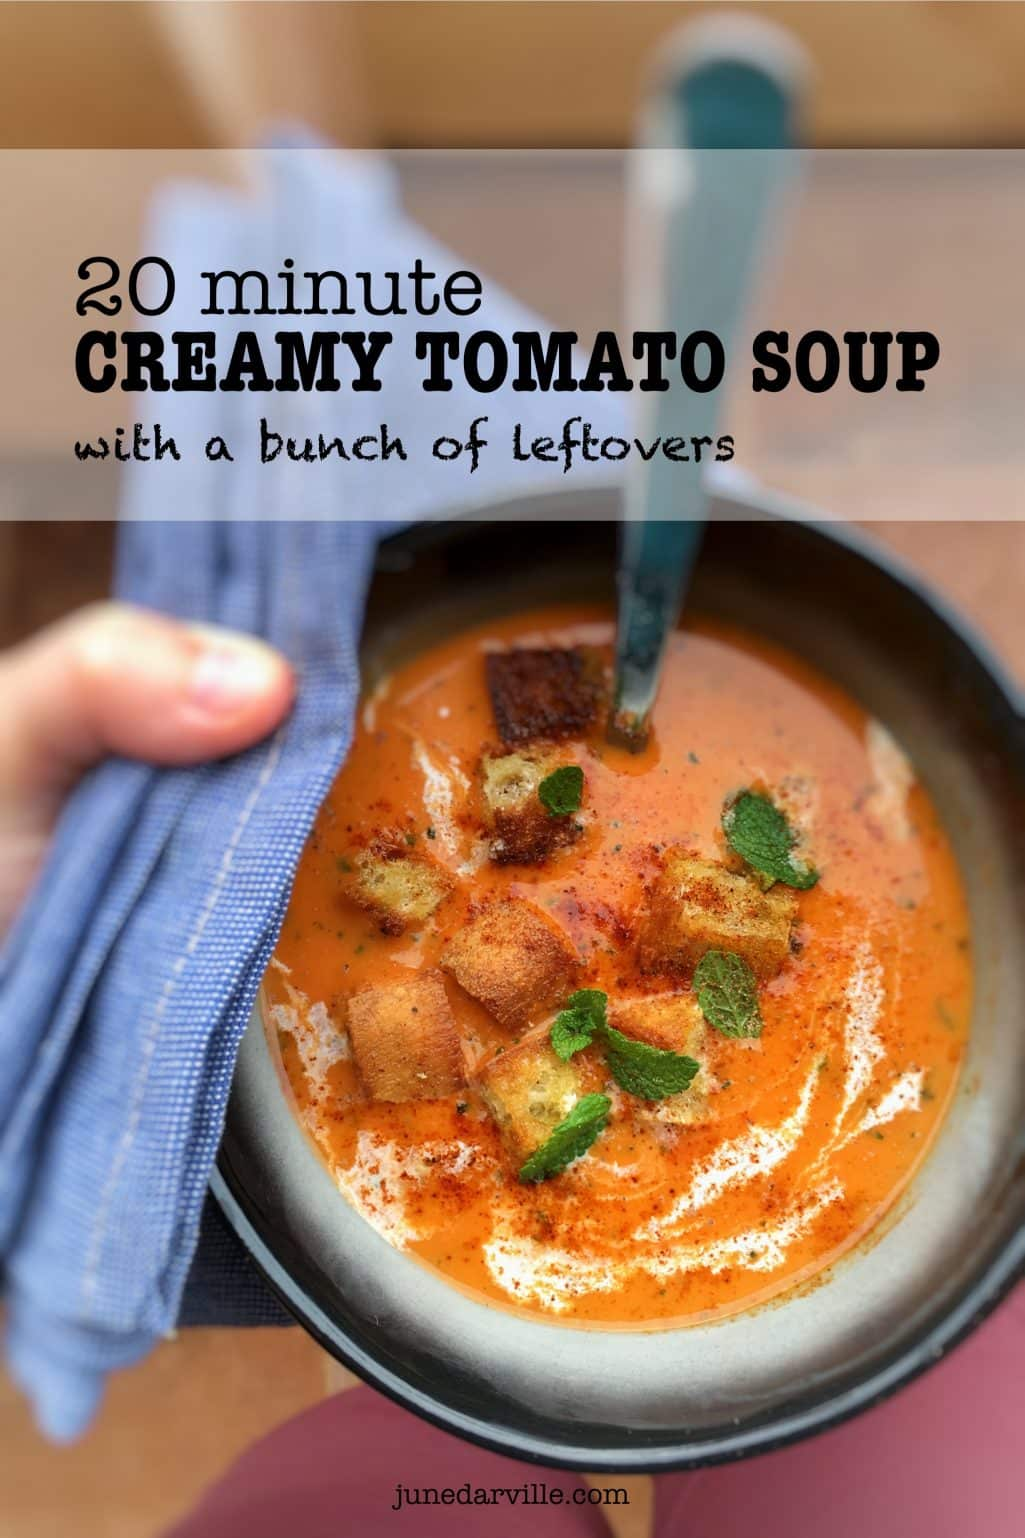 Ripe tomatoes, bread, bell pepper and cream: the perfect leftovers for this quick tomato soup! This soup is ready in 20 minutes!